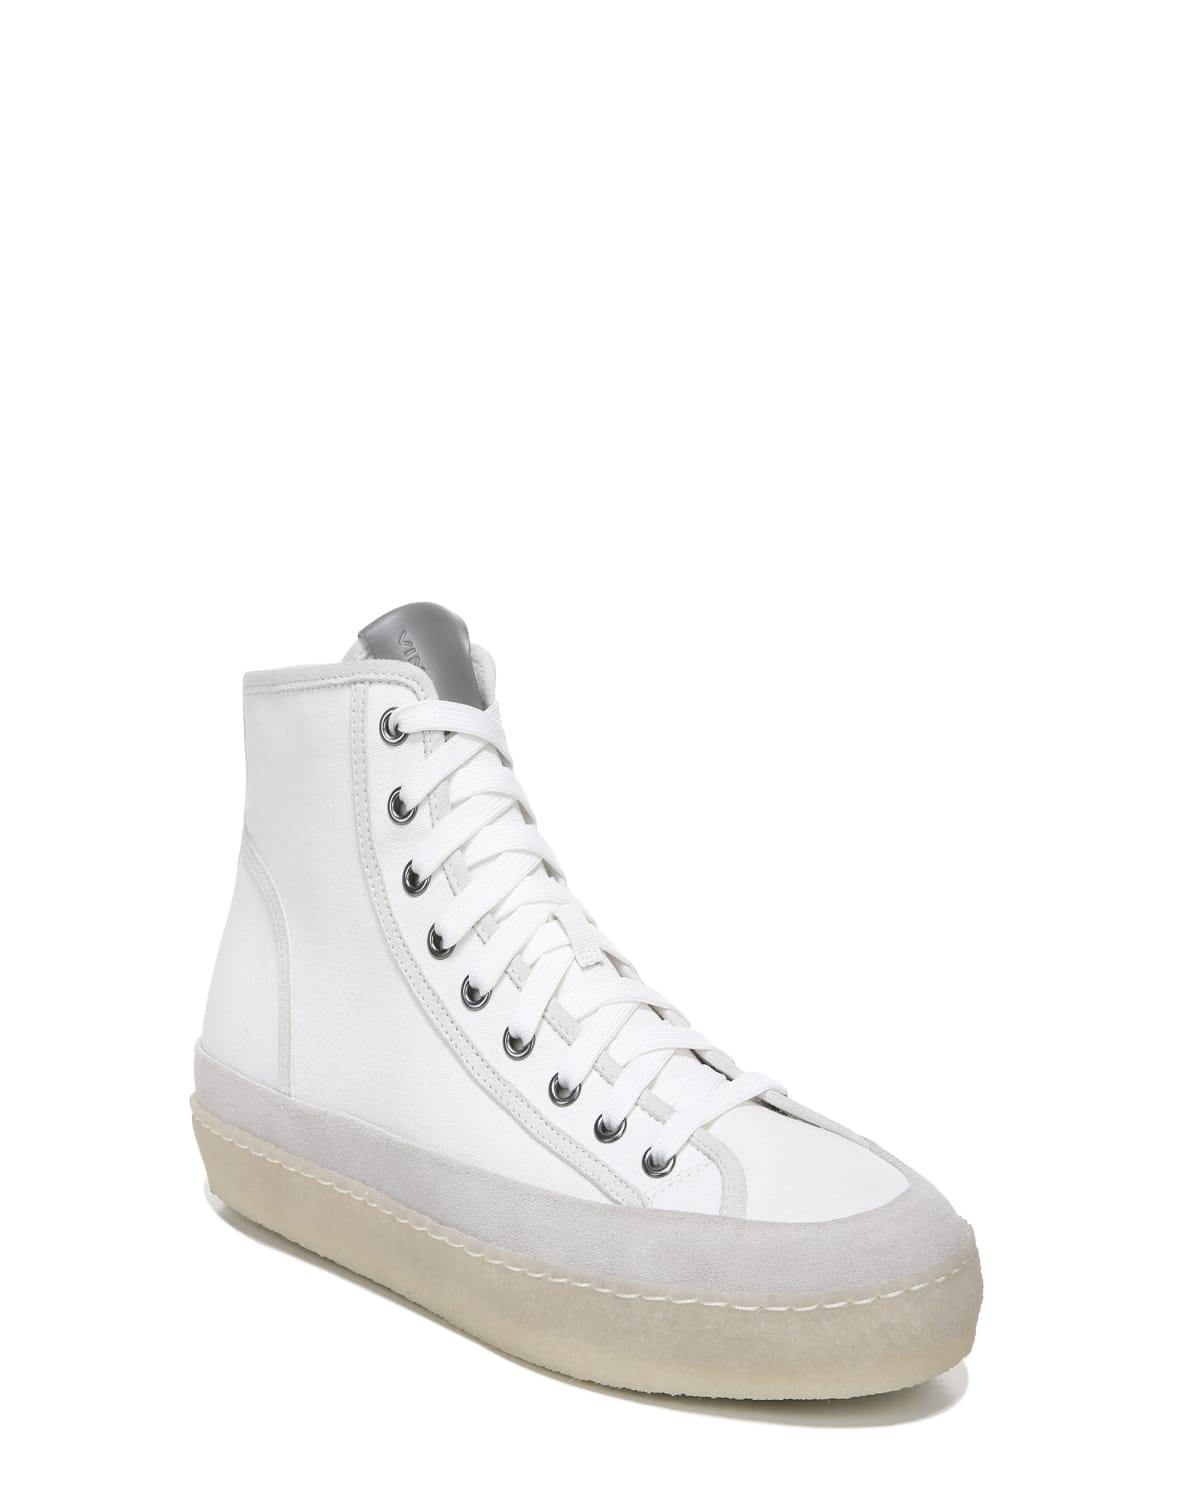 Men's Rodgers Translucent-Sole High-Top Sneakers